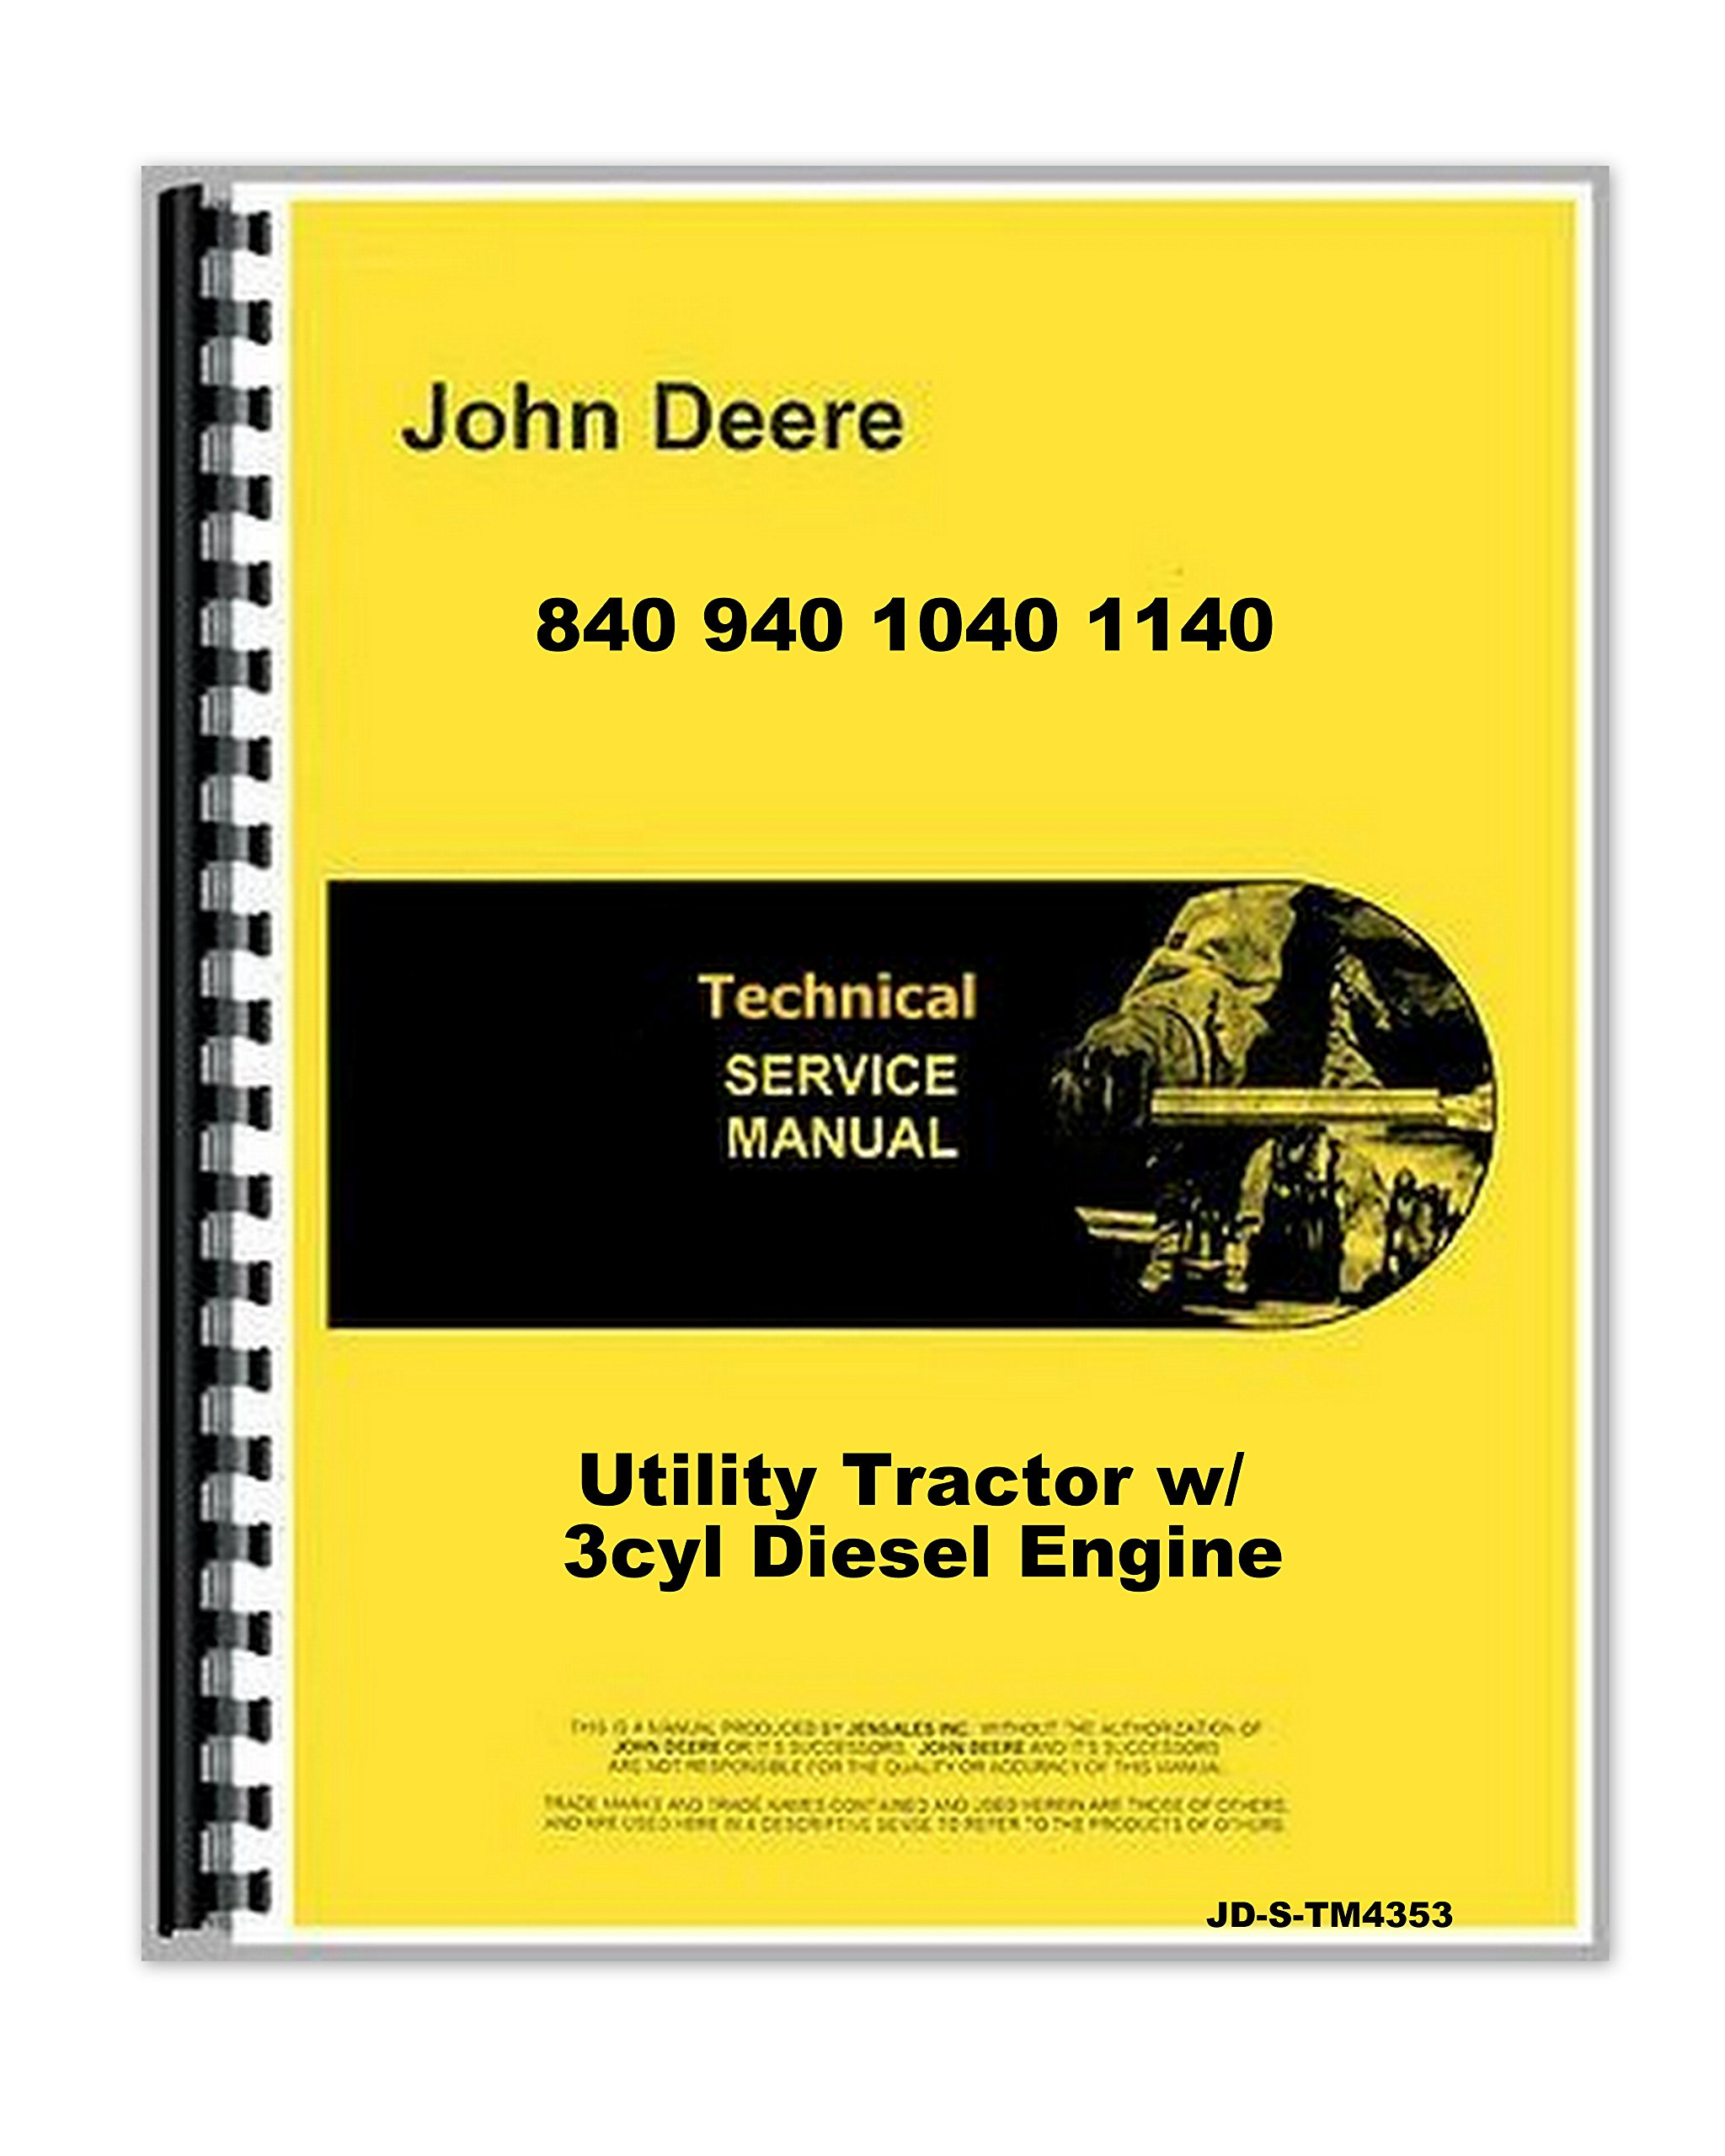 Amazon.com: John Deere 840 940 1040 1140 Tractor Service Technical Manual  (0739718153998): Books